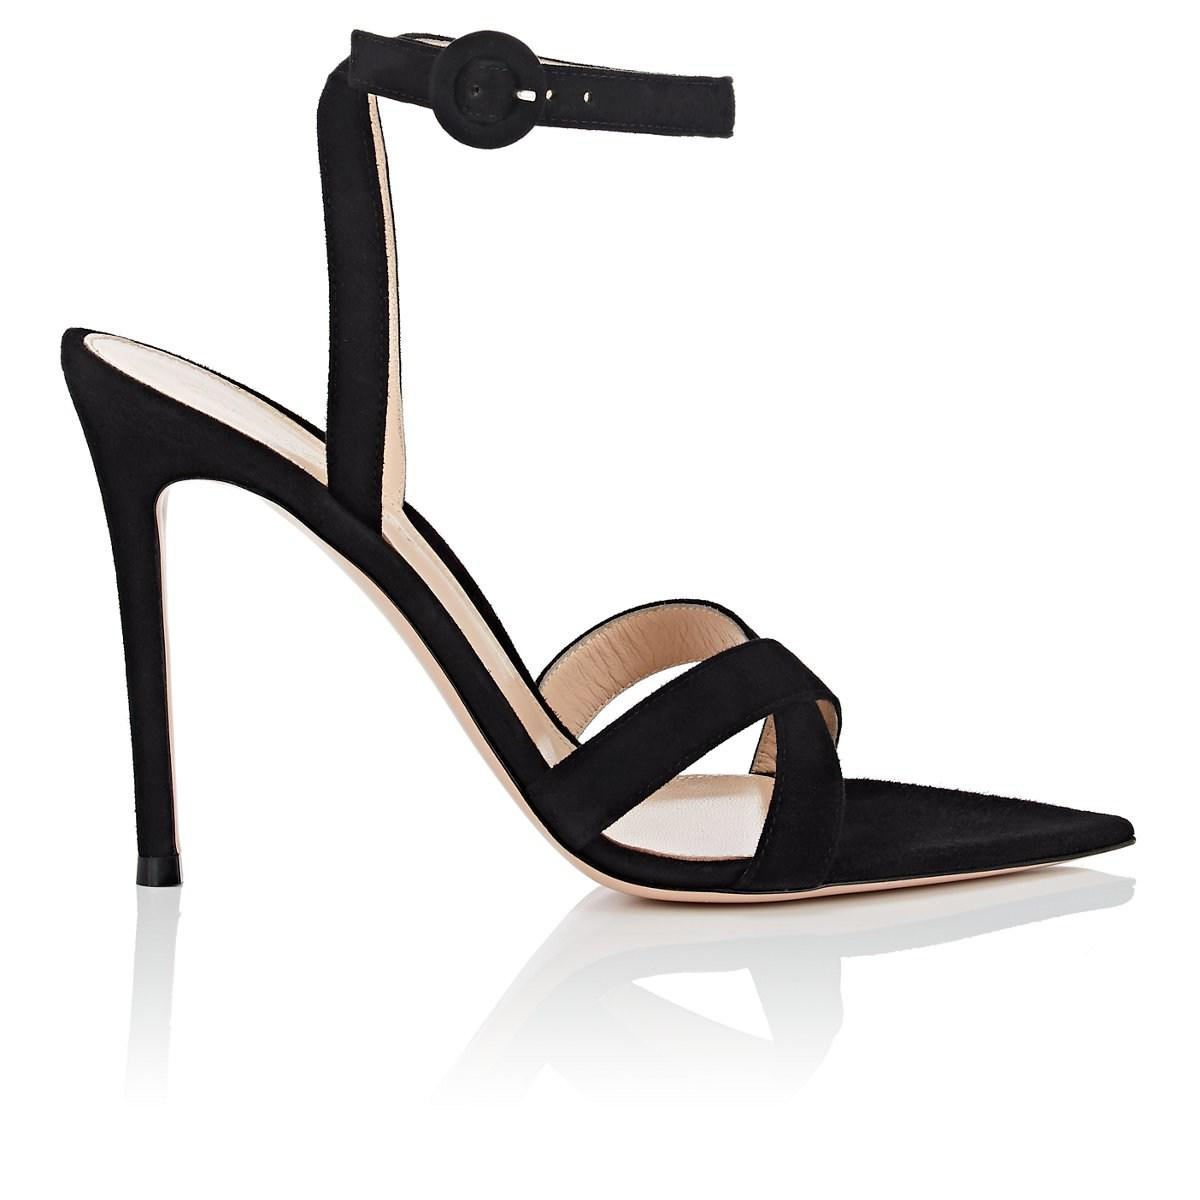 9ea440cc021 Gianvito Rossi Suede Ankle-strap Sandals in Black - Lyst